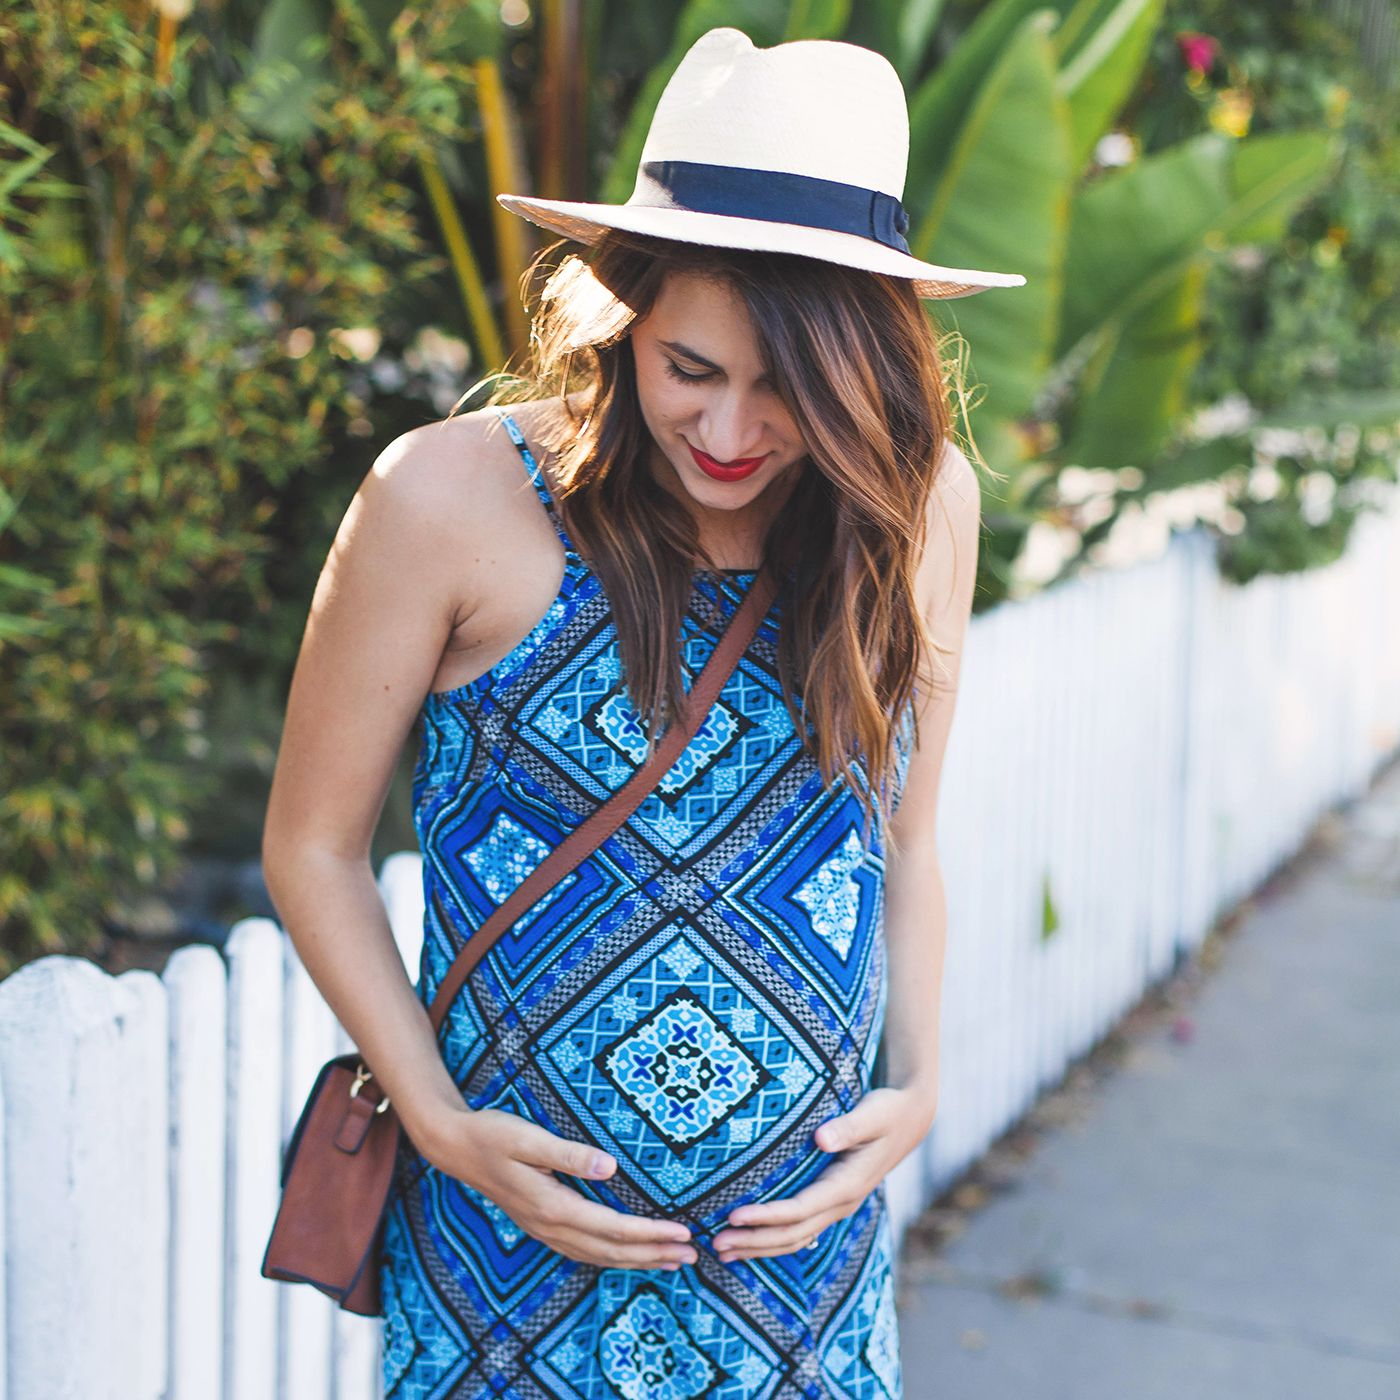 When it comes to feeling stylish and cool while pregnant—the struggle is real. See Natalie from Natalie Dressed's advice for perfect summer maternity style.